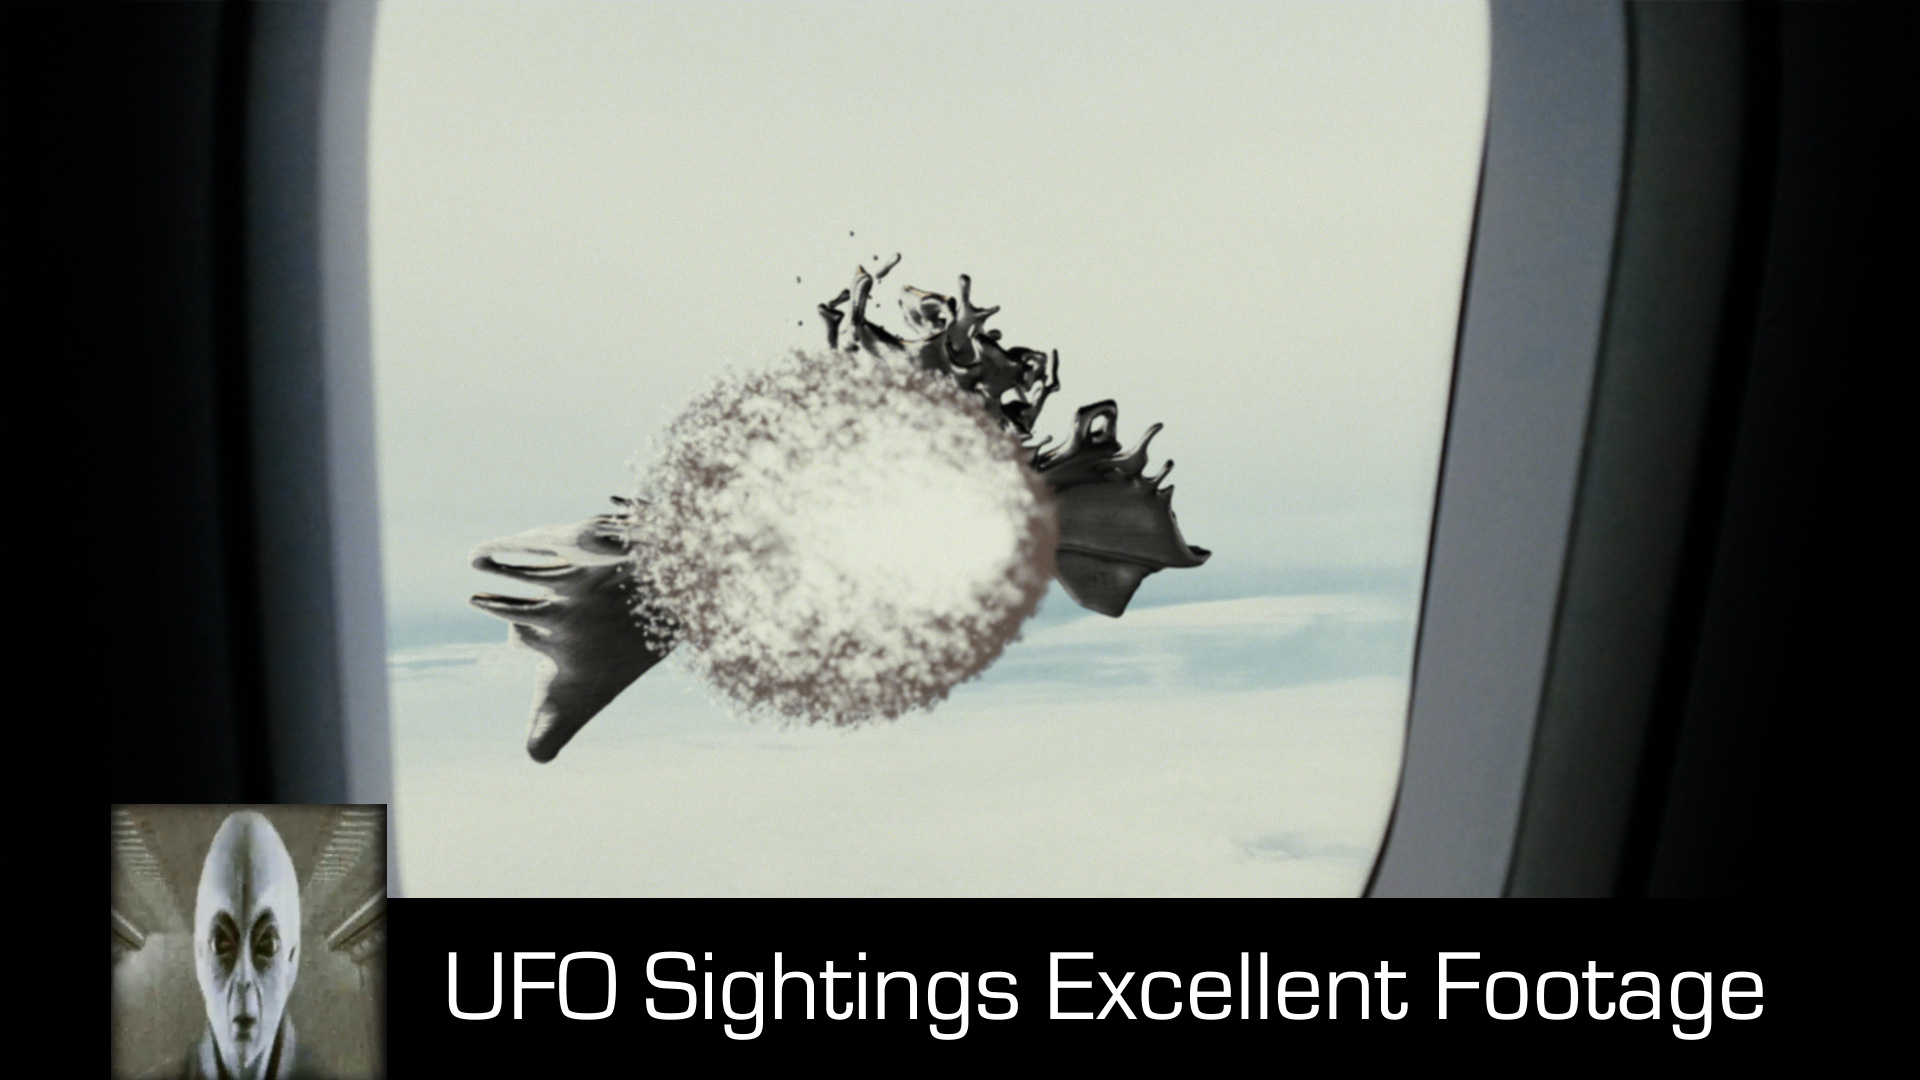 UFO Sightings Excellent Footage August 23rd 2017